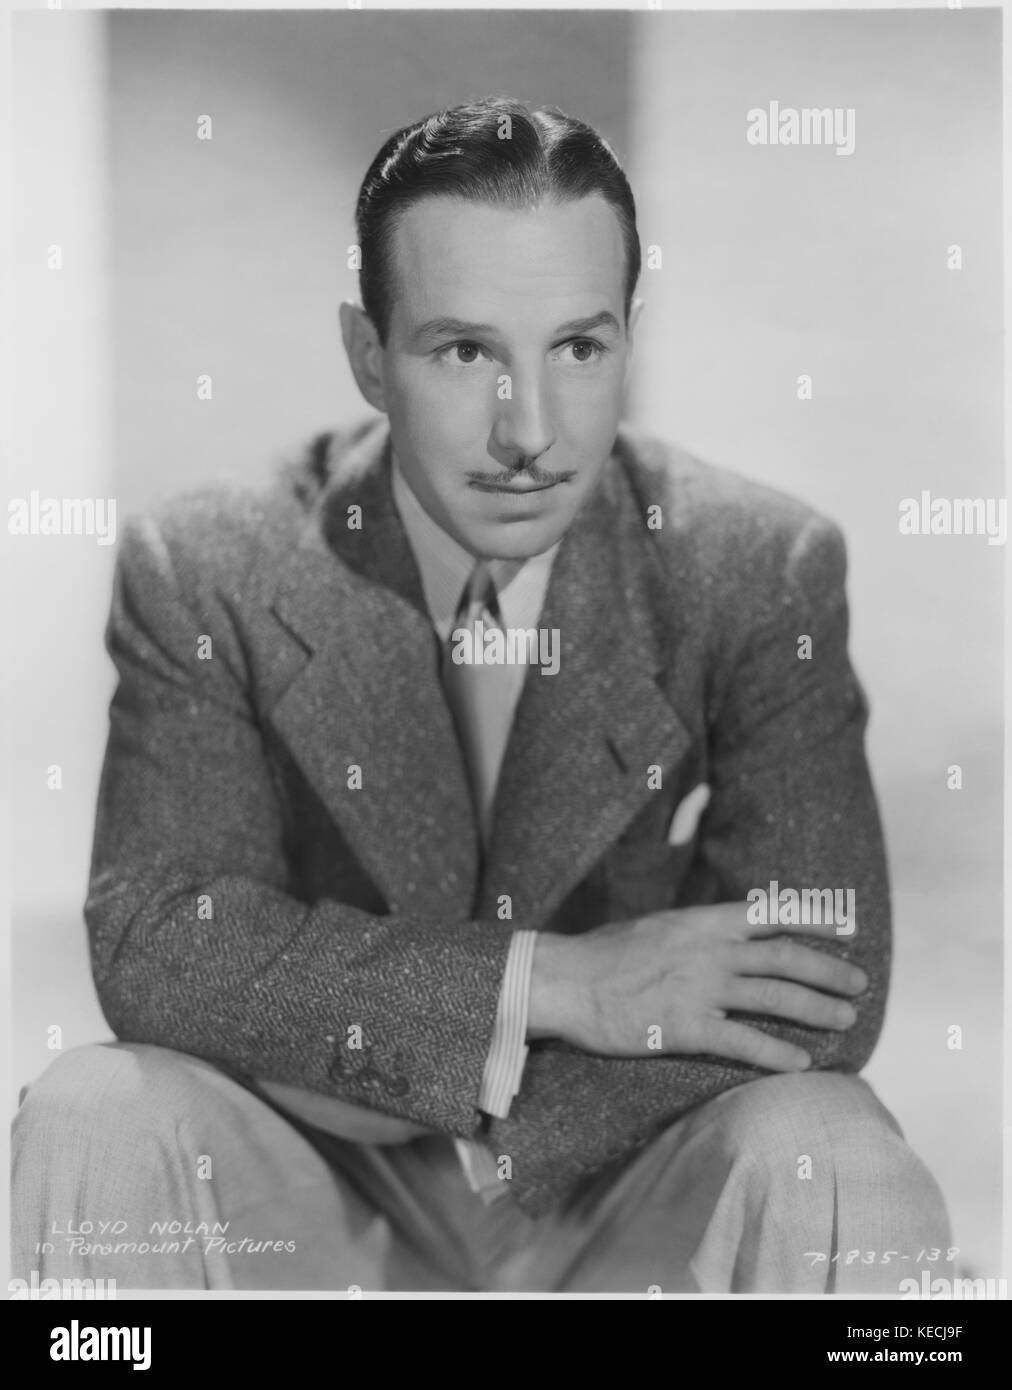 Actor Lloyd Nolan, Publicity Portrait, Paramount Pictures, 1939 - Stock Image